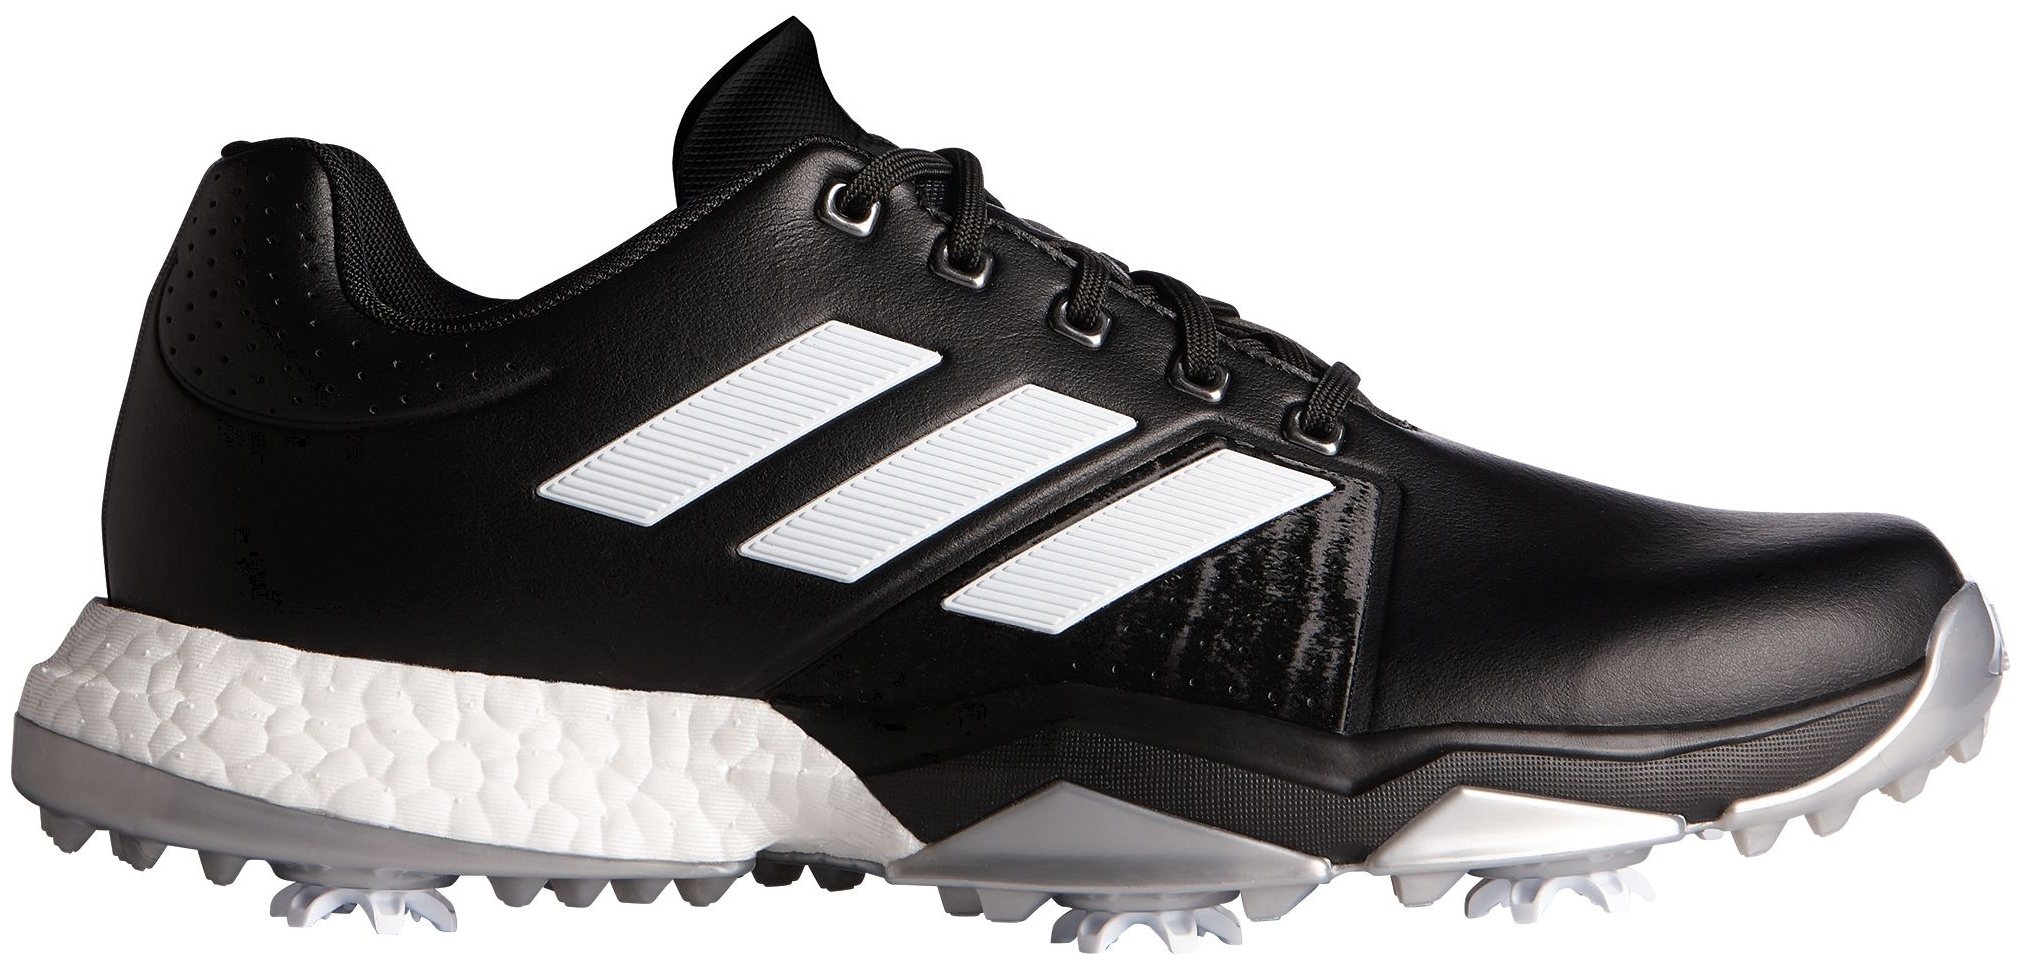 adidas adipower BOOST 3 Golf Shoes by Adidas